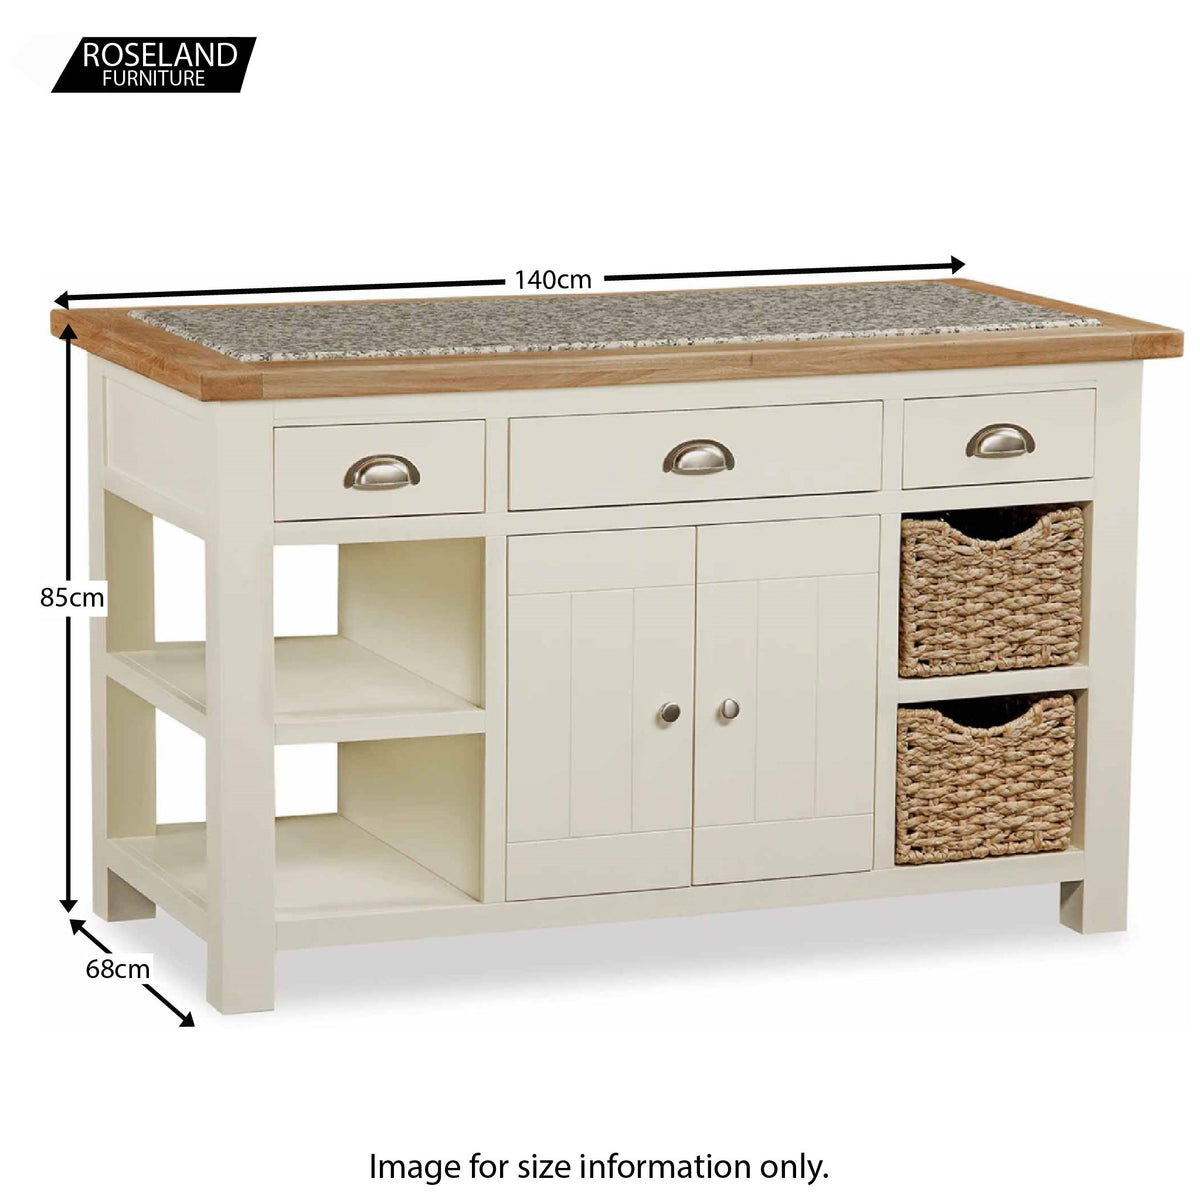 Daymer Cream Oak & Granite Topped Kitchen Island - Size Guide